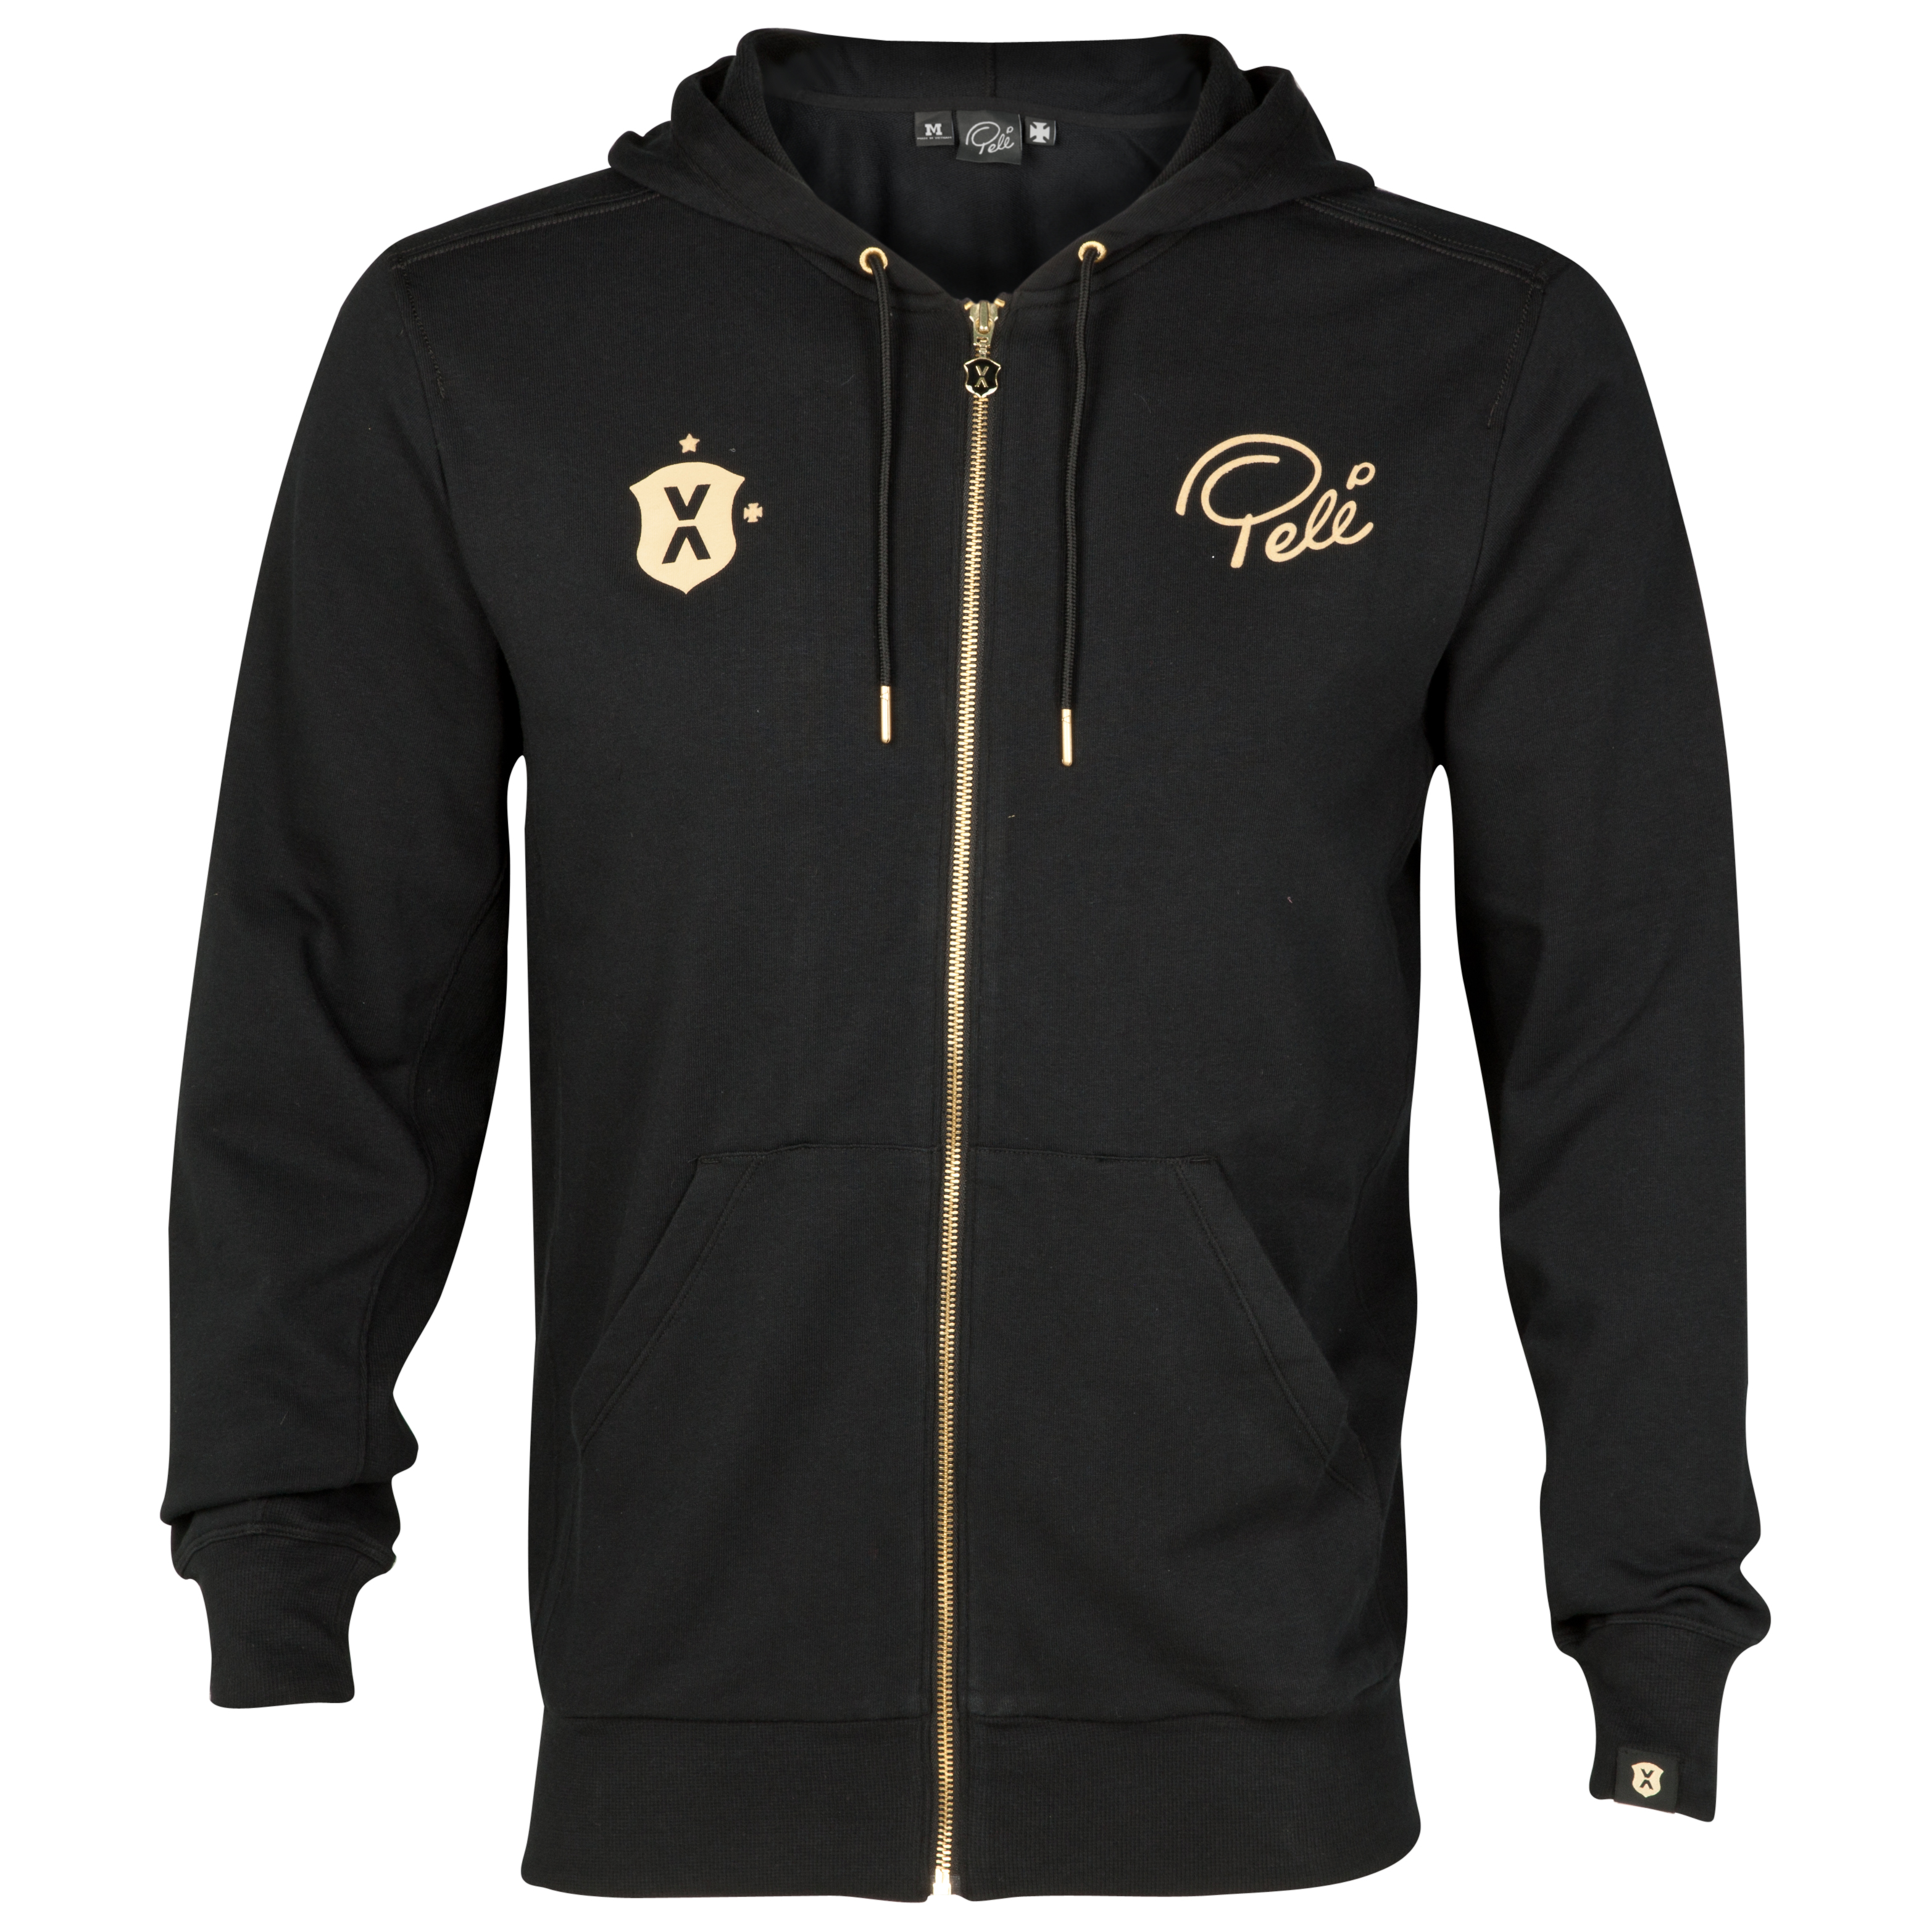 Pele Sports Zip Hoody - Black Anthracite